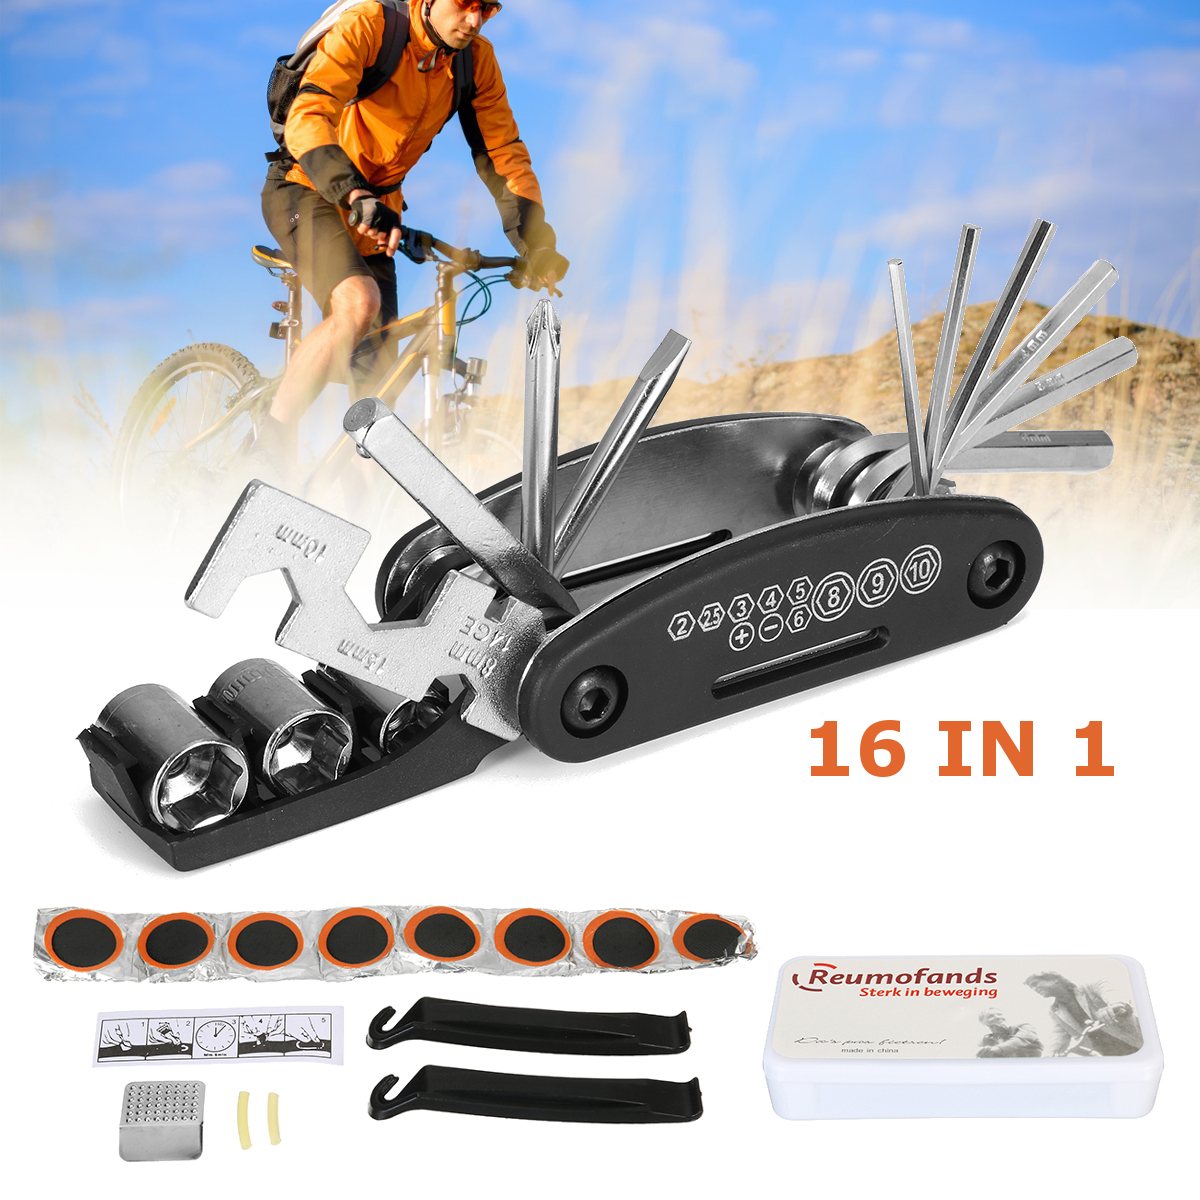 16 In 1 Multi-Function Bike Repair Tool Kit Grinding Film Torque